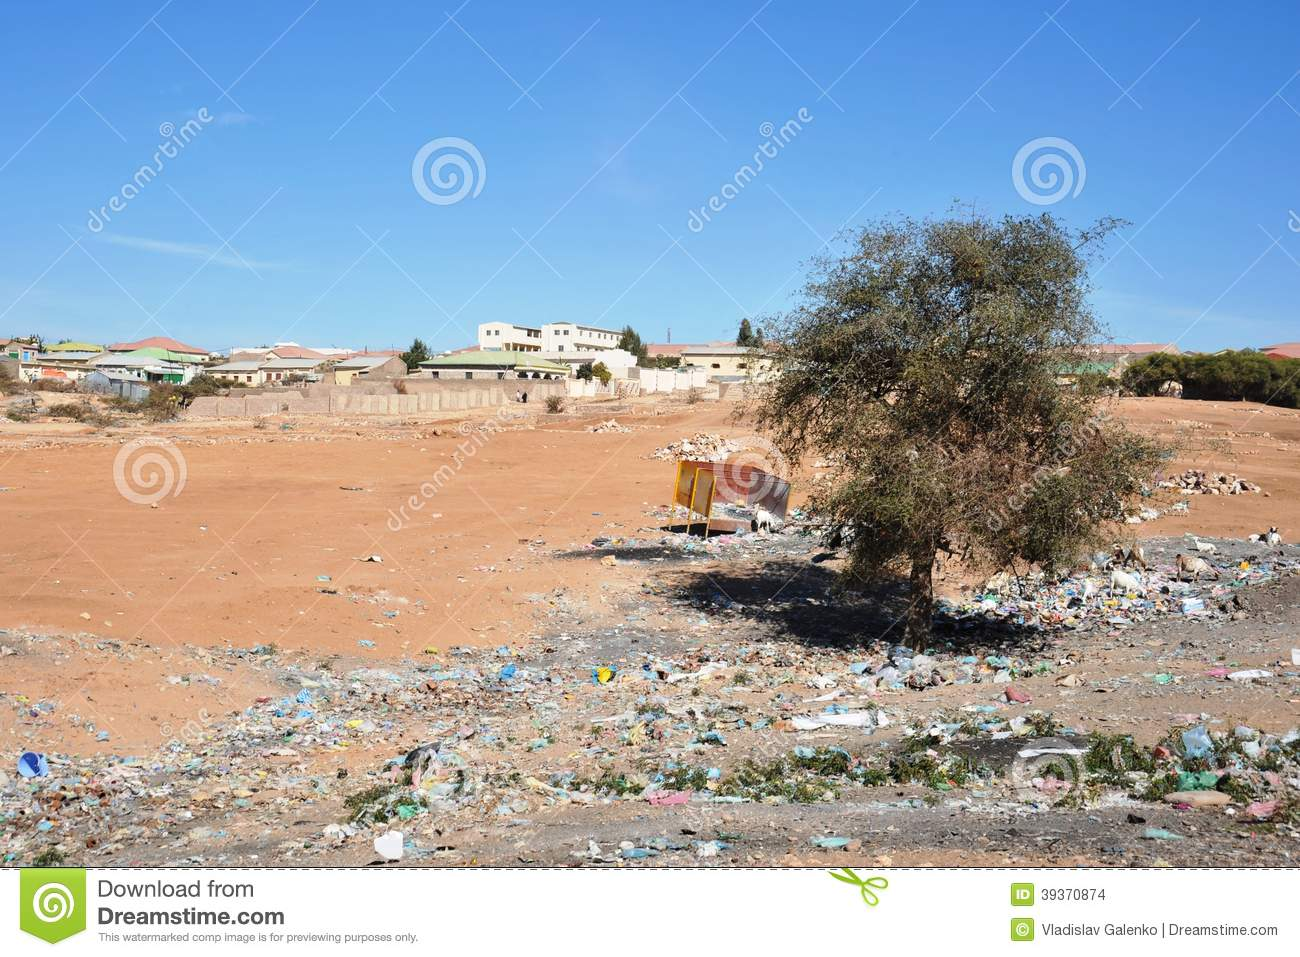 Hargeisa is a city in Somalia